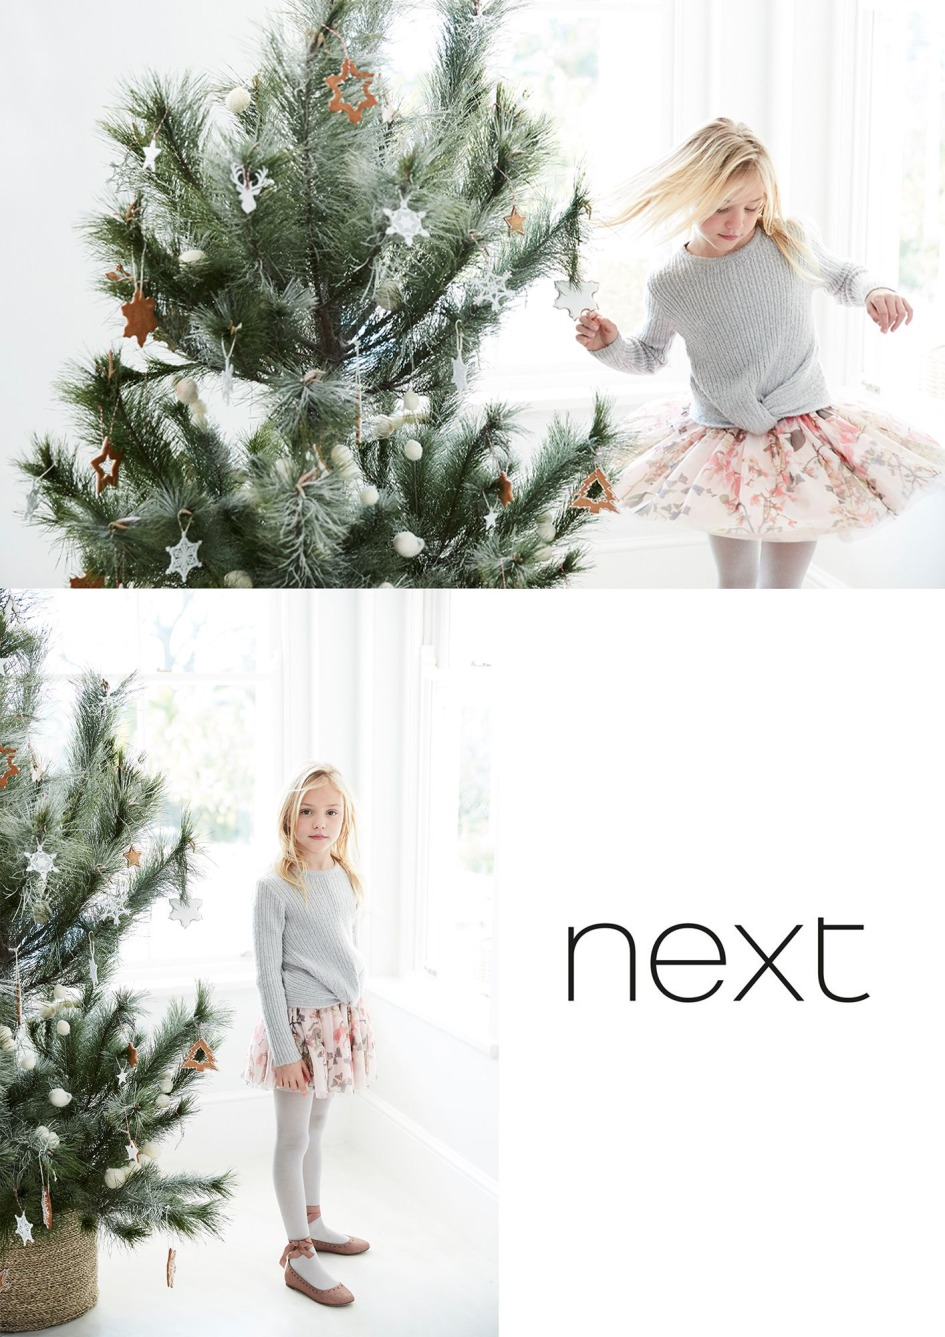 Ian Boddy - Christmas Advertising Photography Spotlight Nov 2017 ...